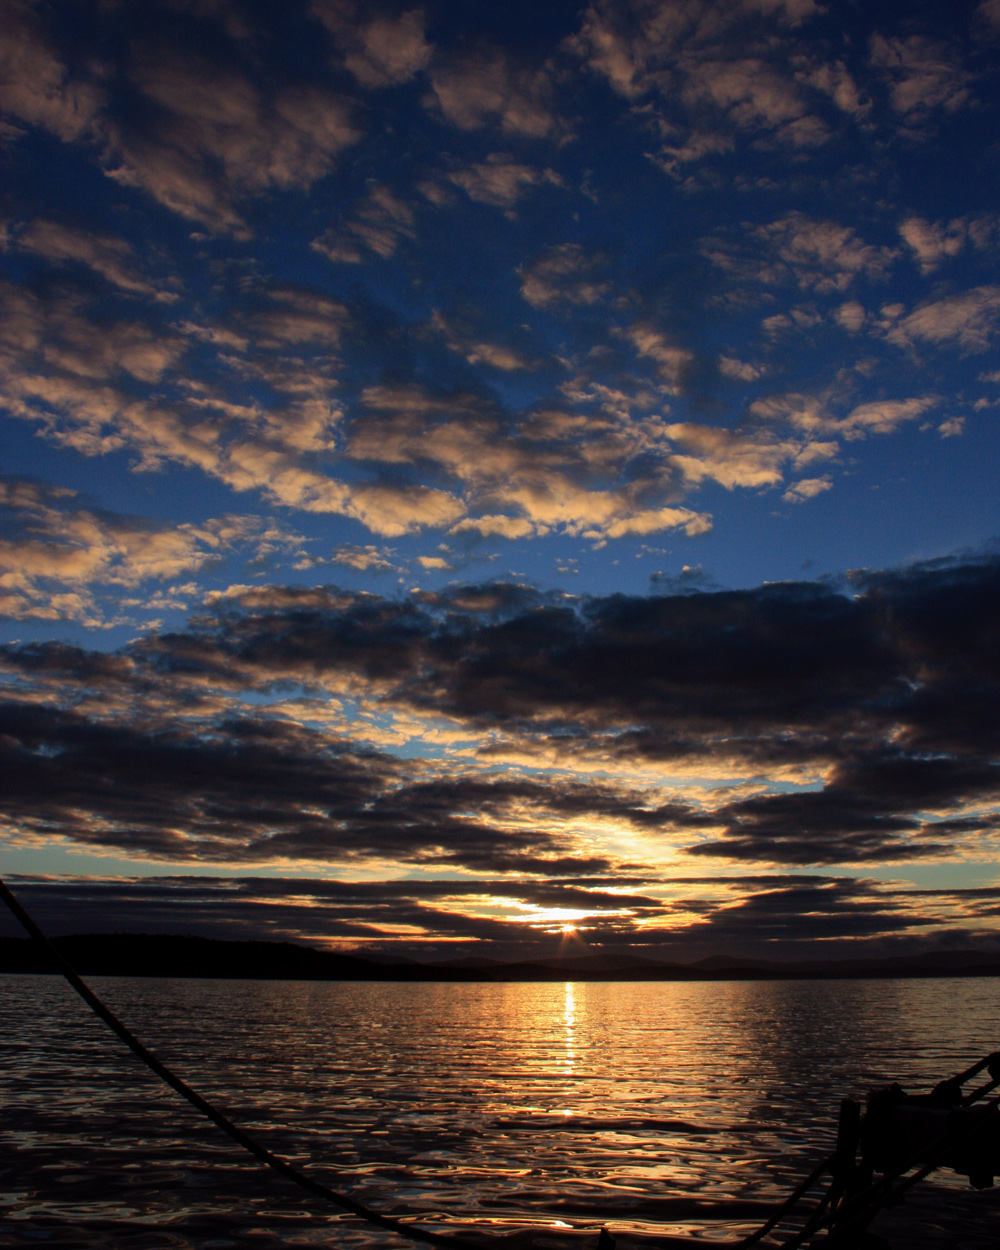 port-davey-sunset.jpg